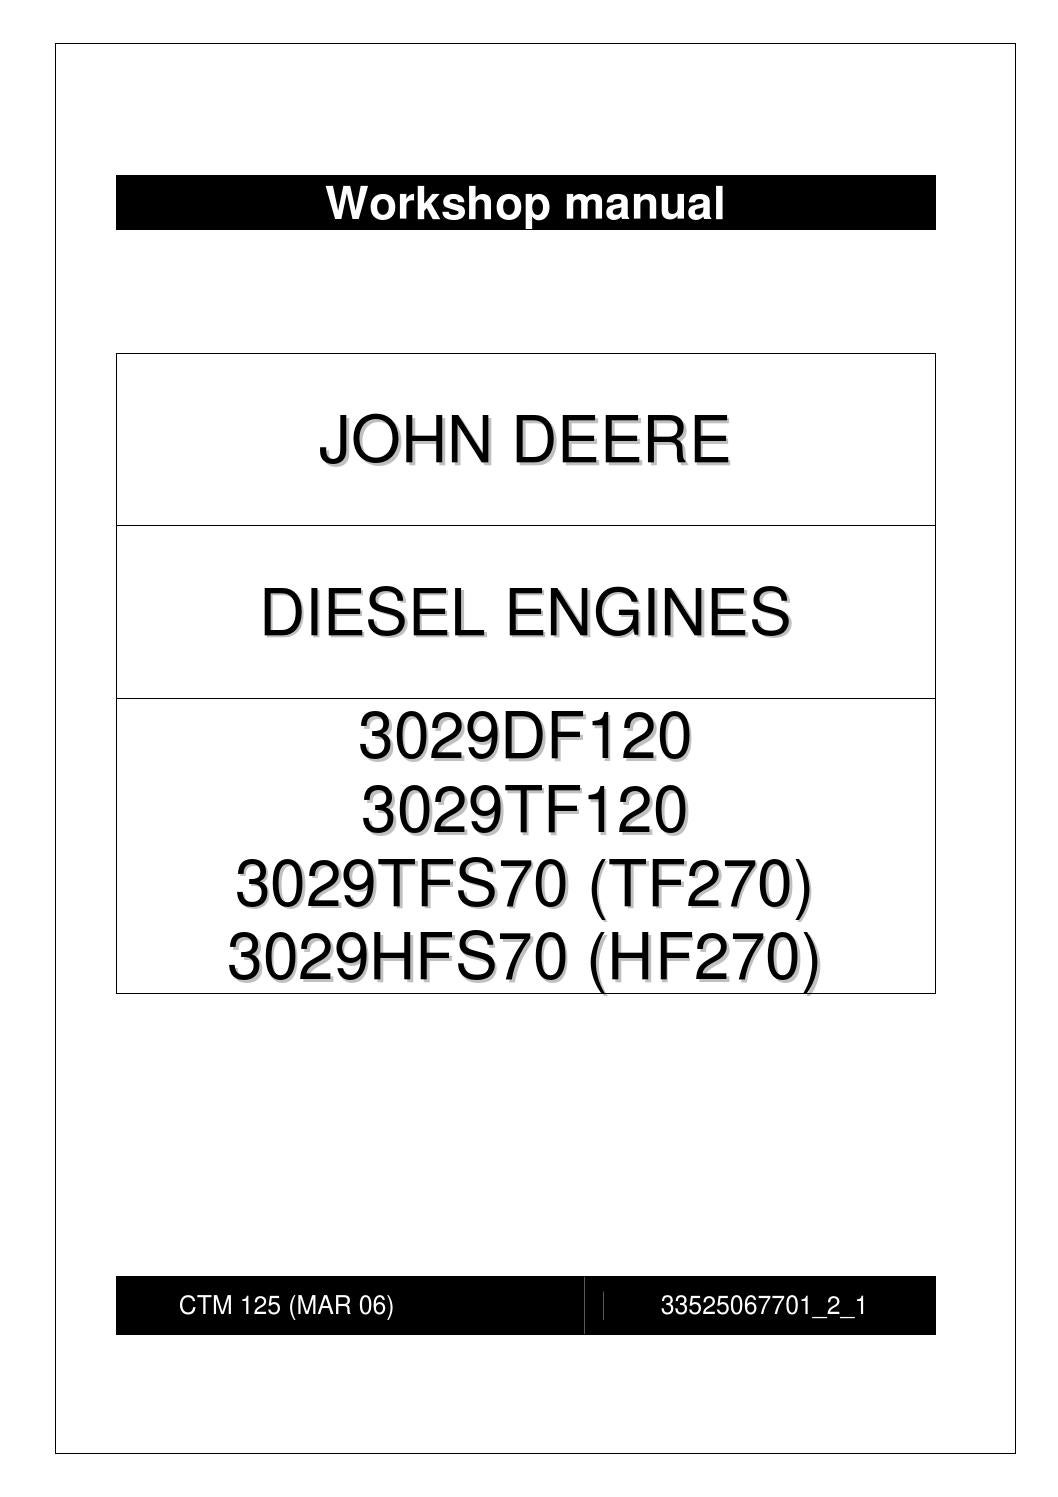 John Deere Workshop Manual For Engine 3029 By Power Generation Issuu 400 Riding Lawn Mower Wiring Diagram